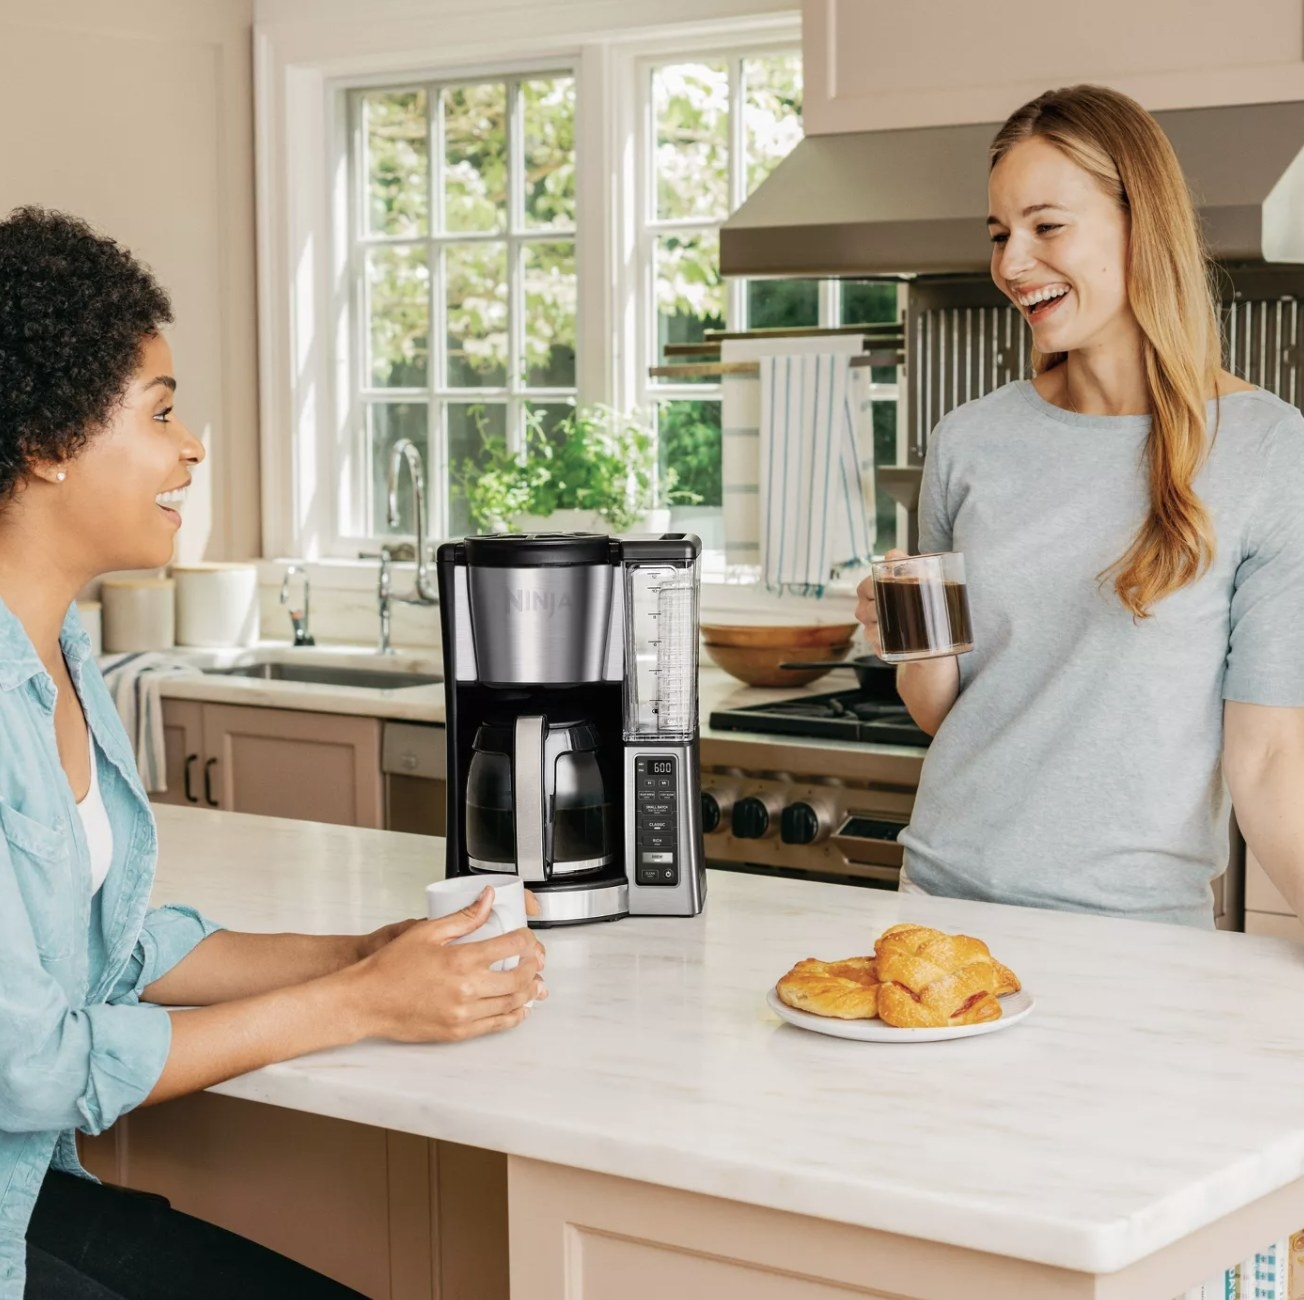 Two people drinking coffee next to the coffee maker